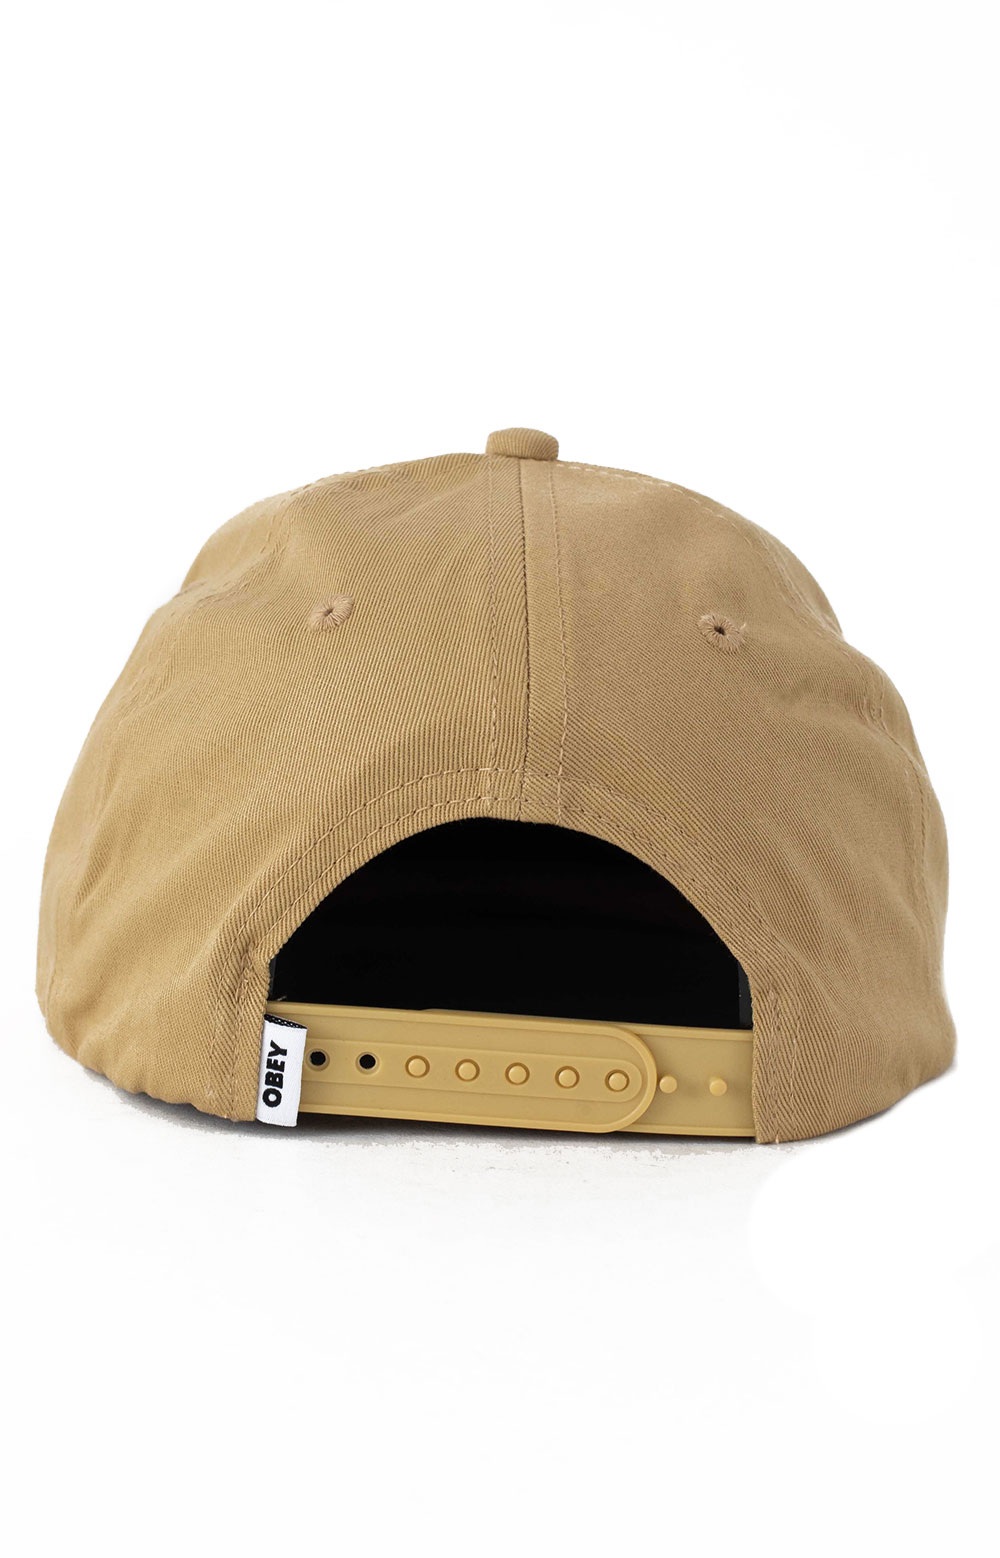 Bold Label Organic Snap-Back Hat - Almond  3